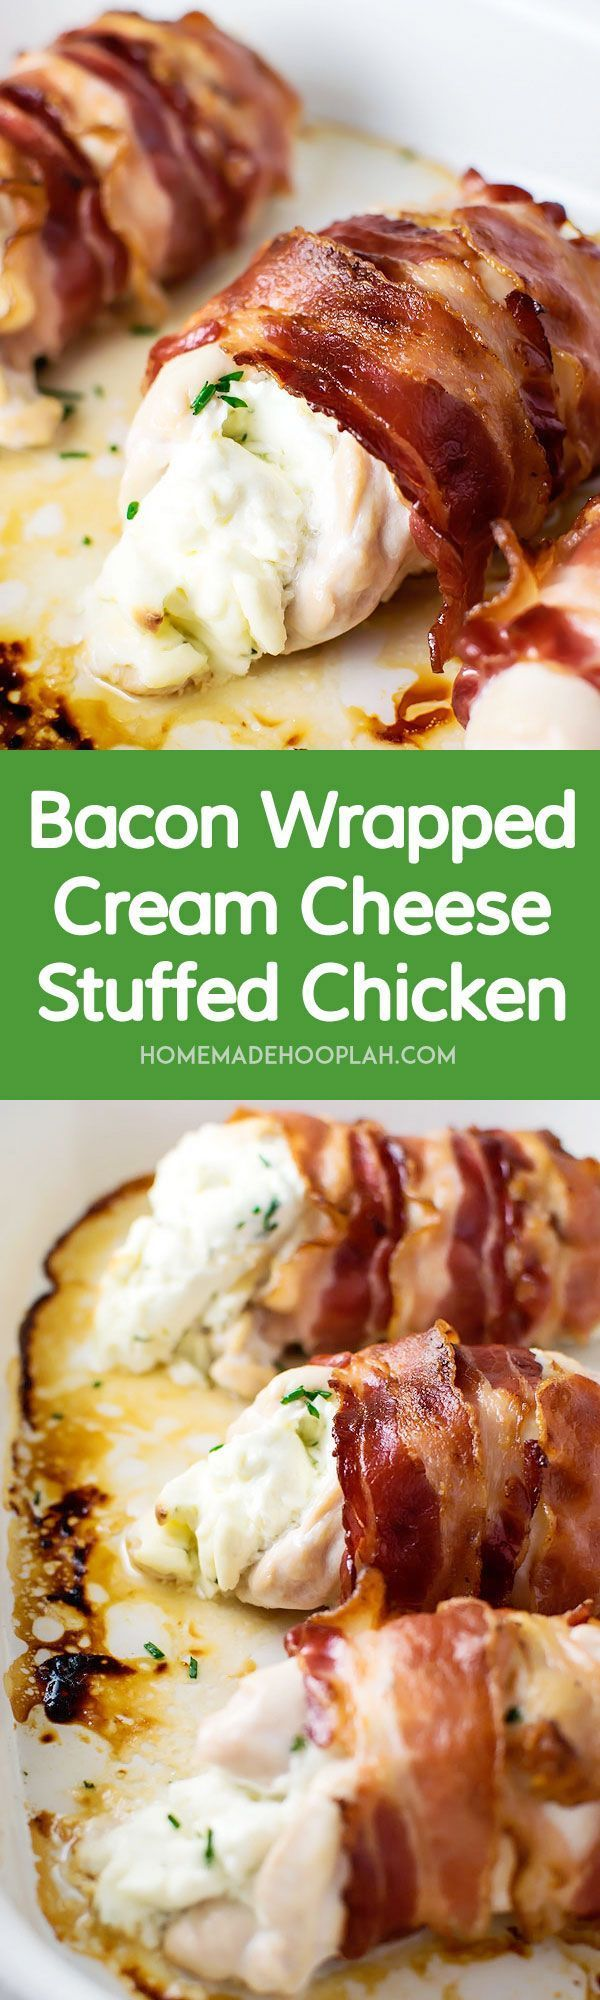 Bacon Wrapped Cream Cheese Stuffed Chicken - Tender chicken breast stuffed with cream cheese and chives wrapped tightly within crispy bacon.